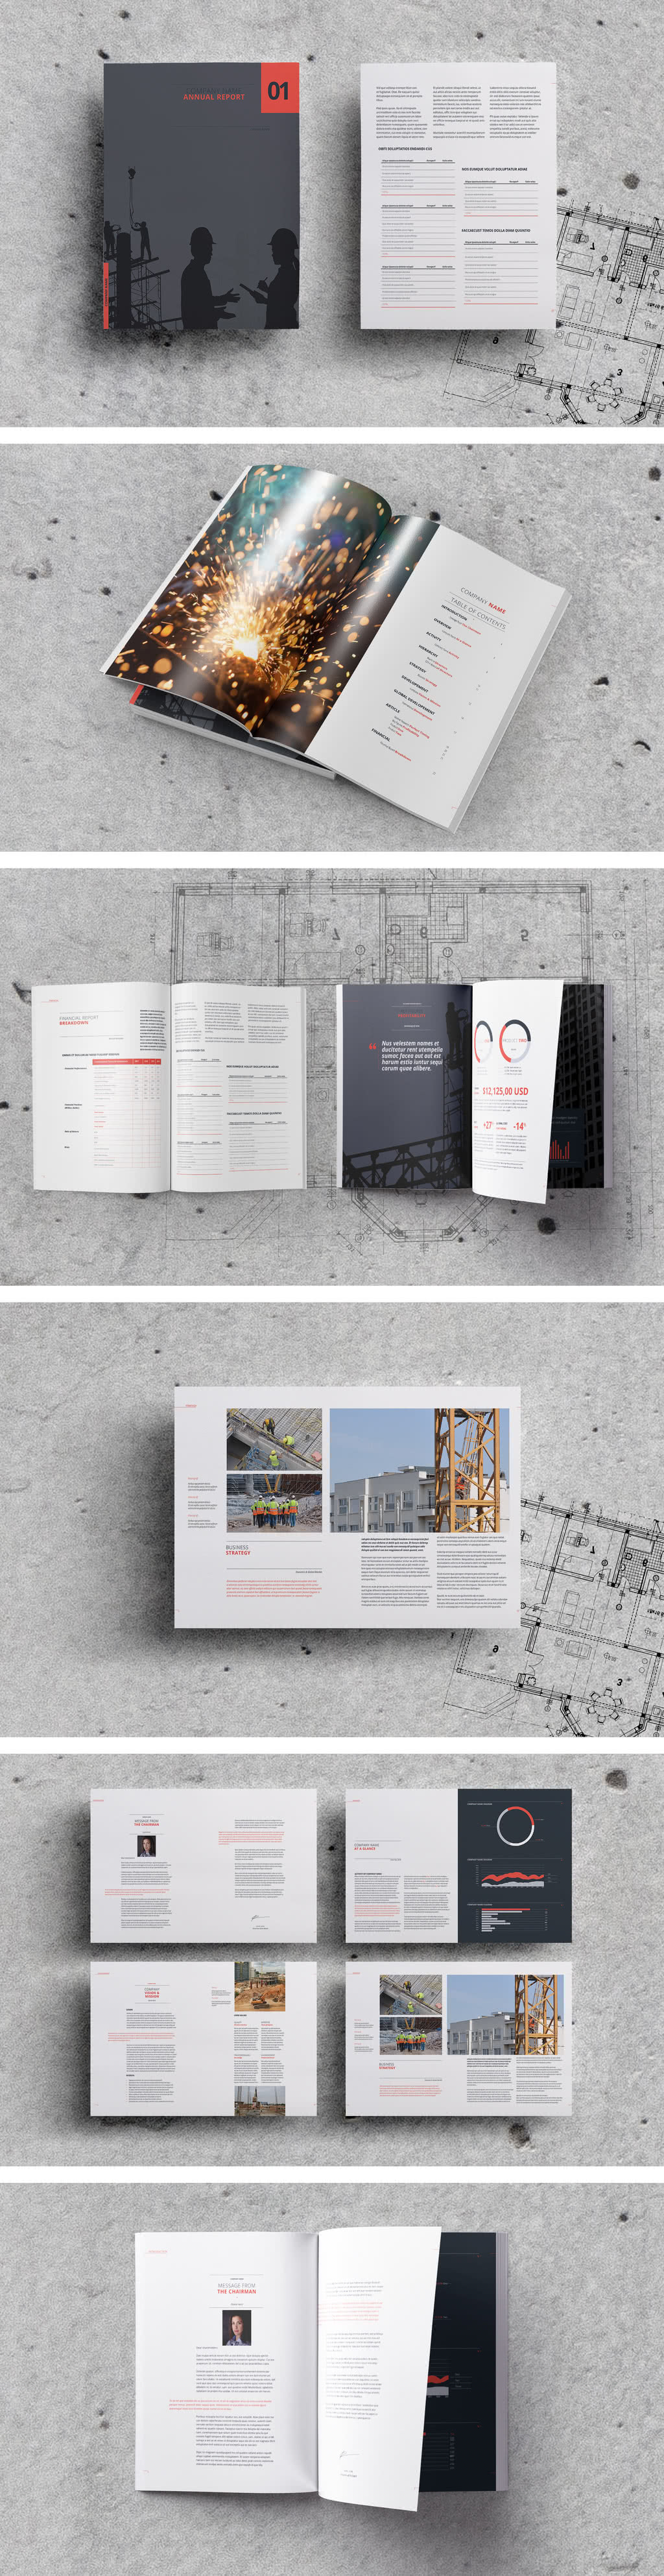 Clean and Elegant Report InDesign Template Preview